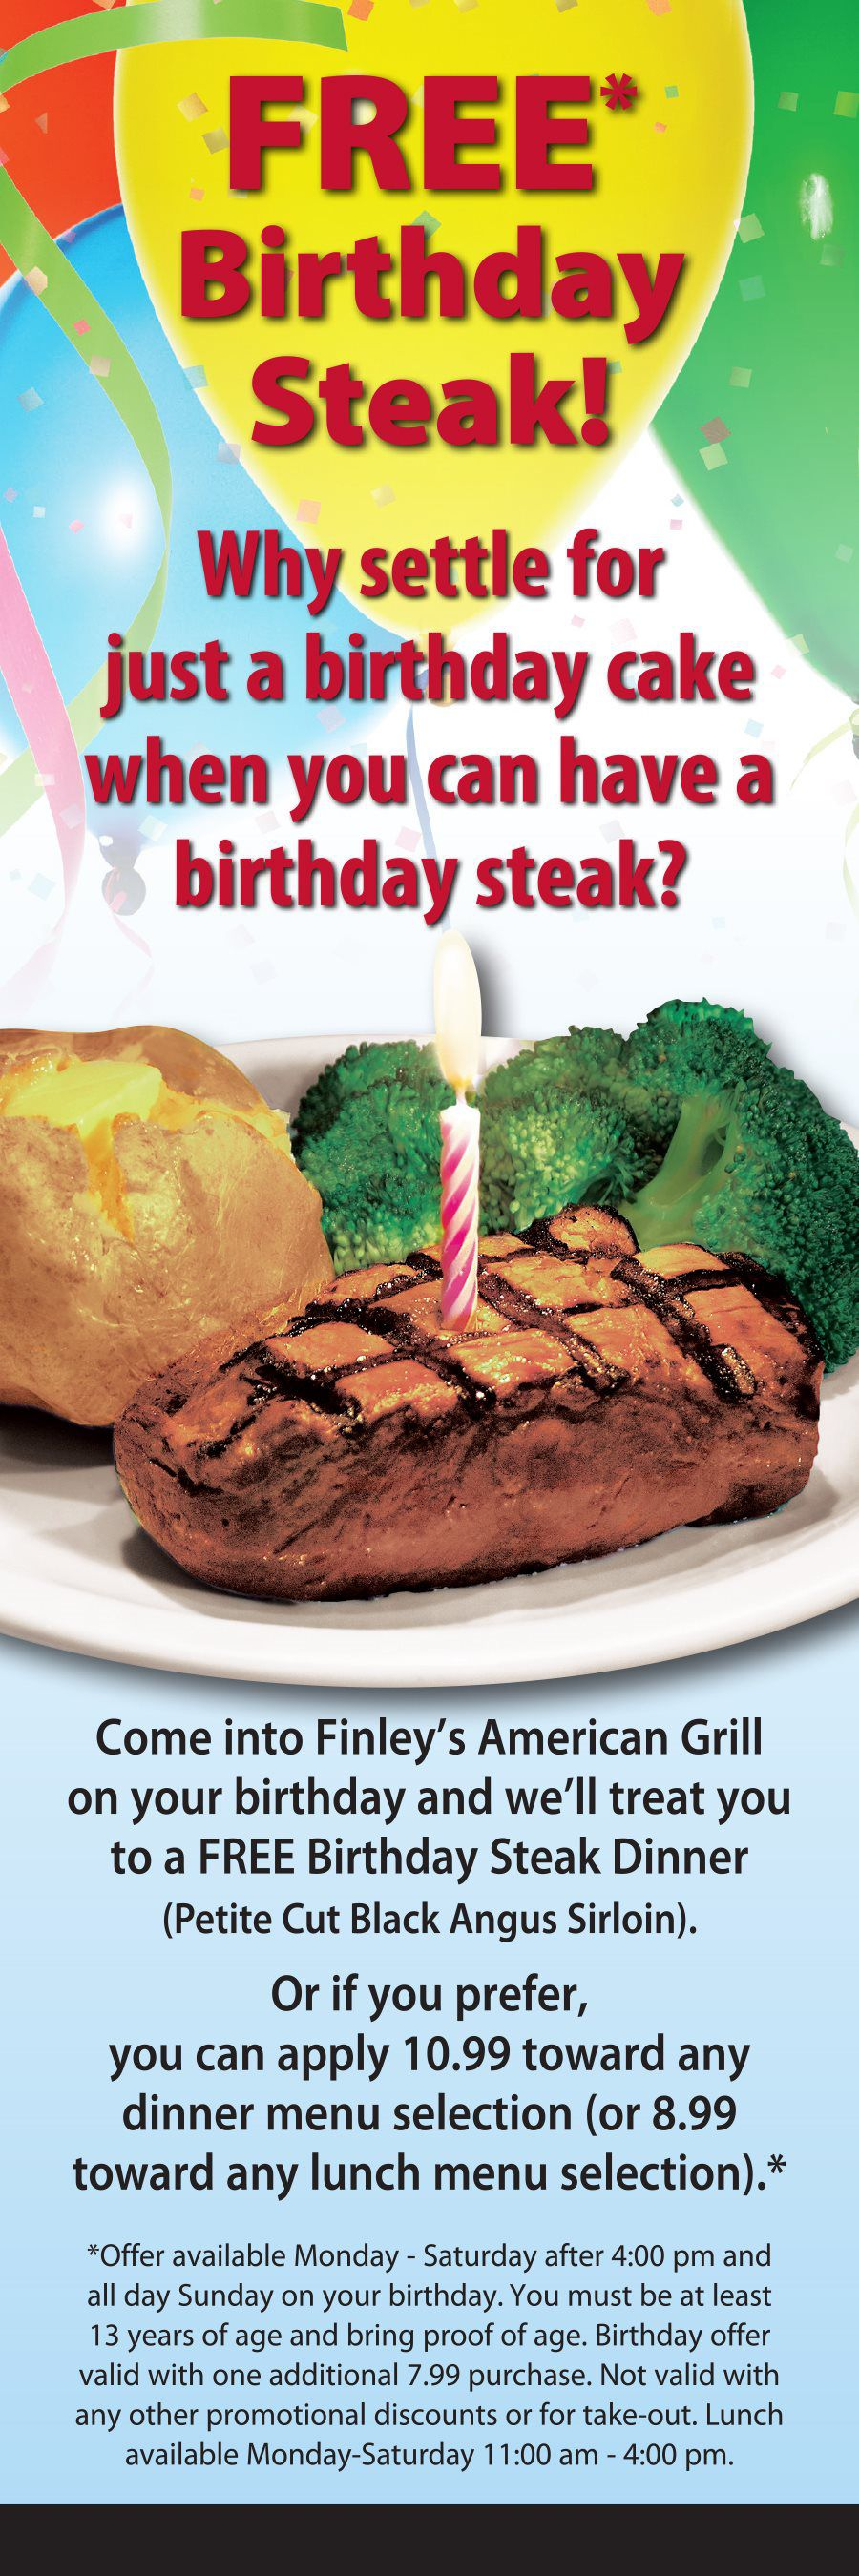 free steak dinner on your birthday